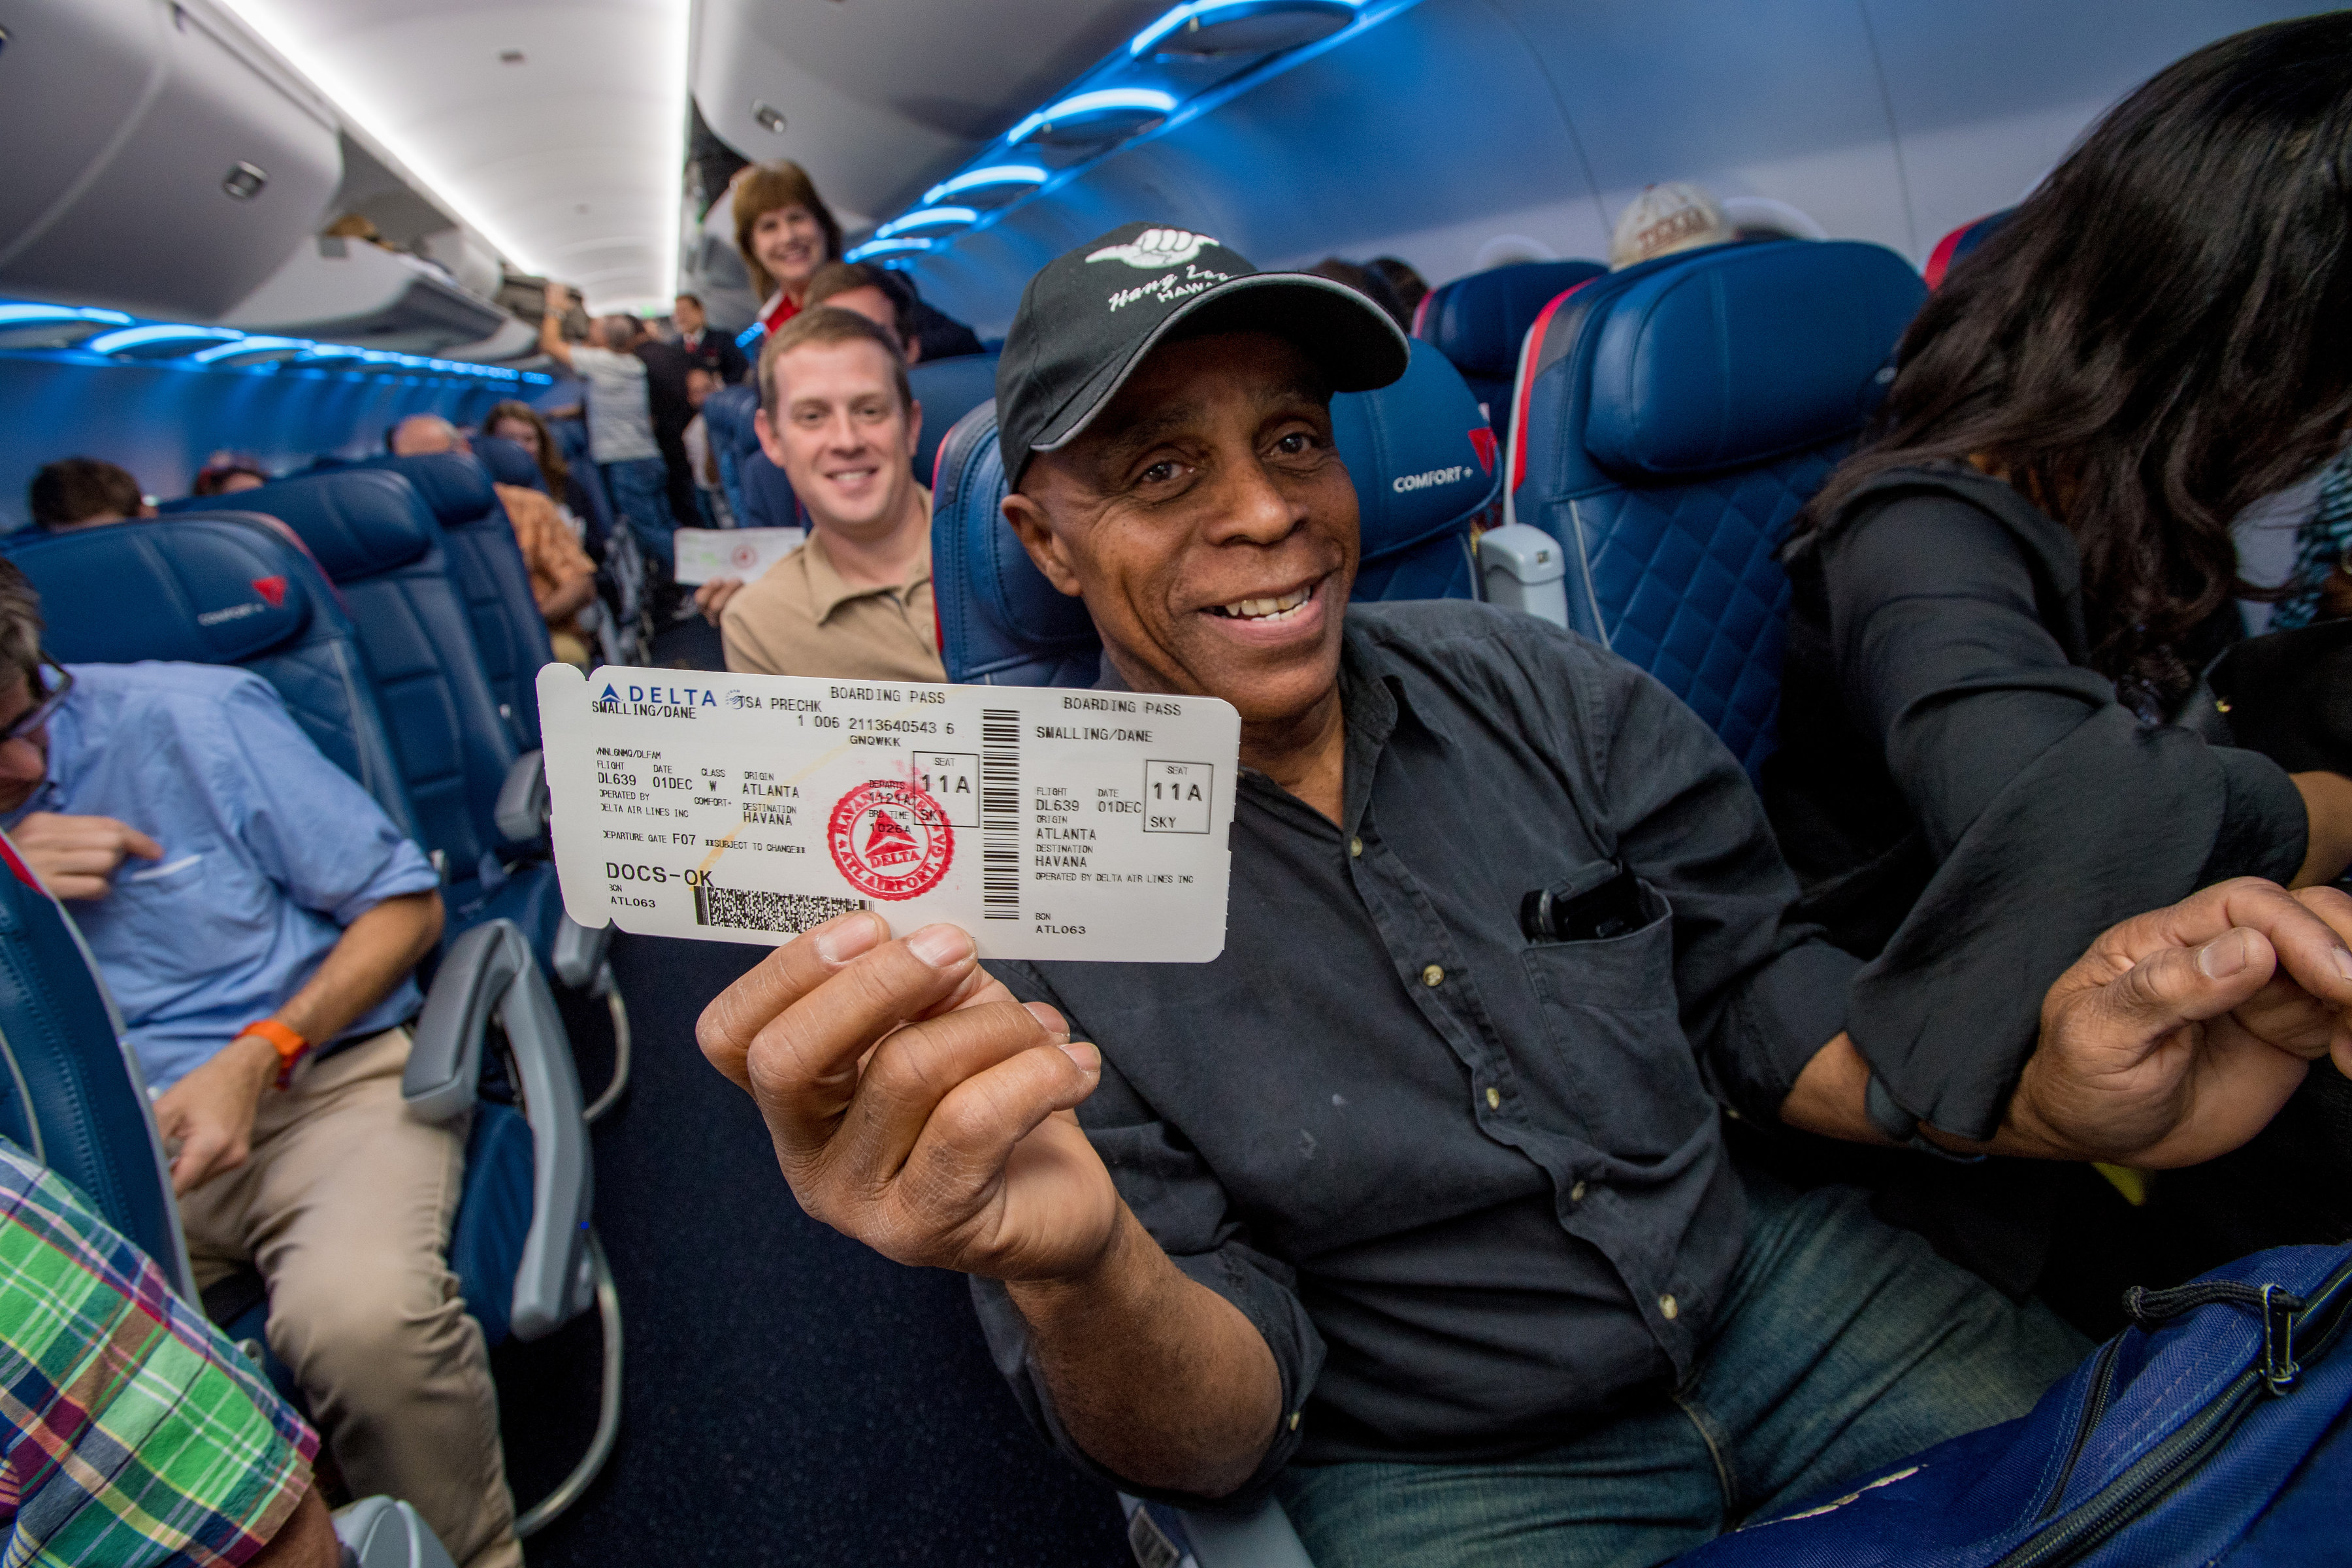 Man holding a ticket on the plane